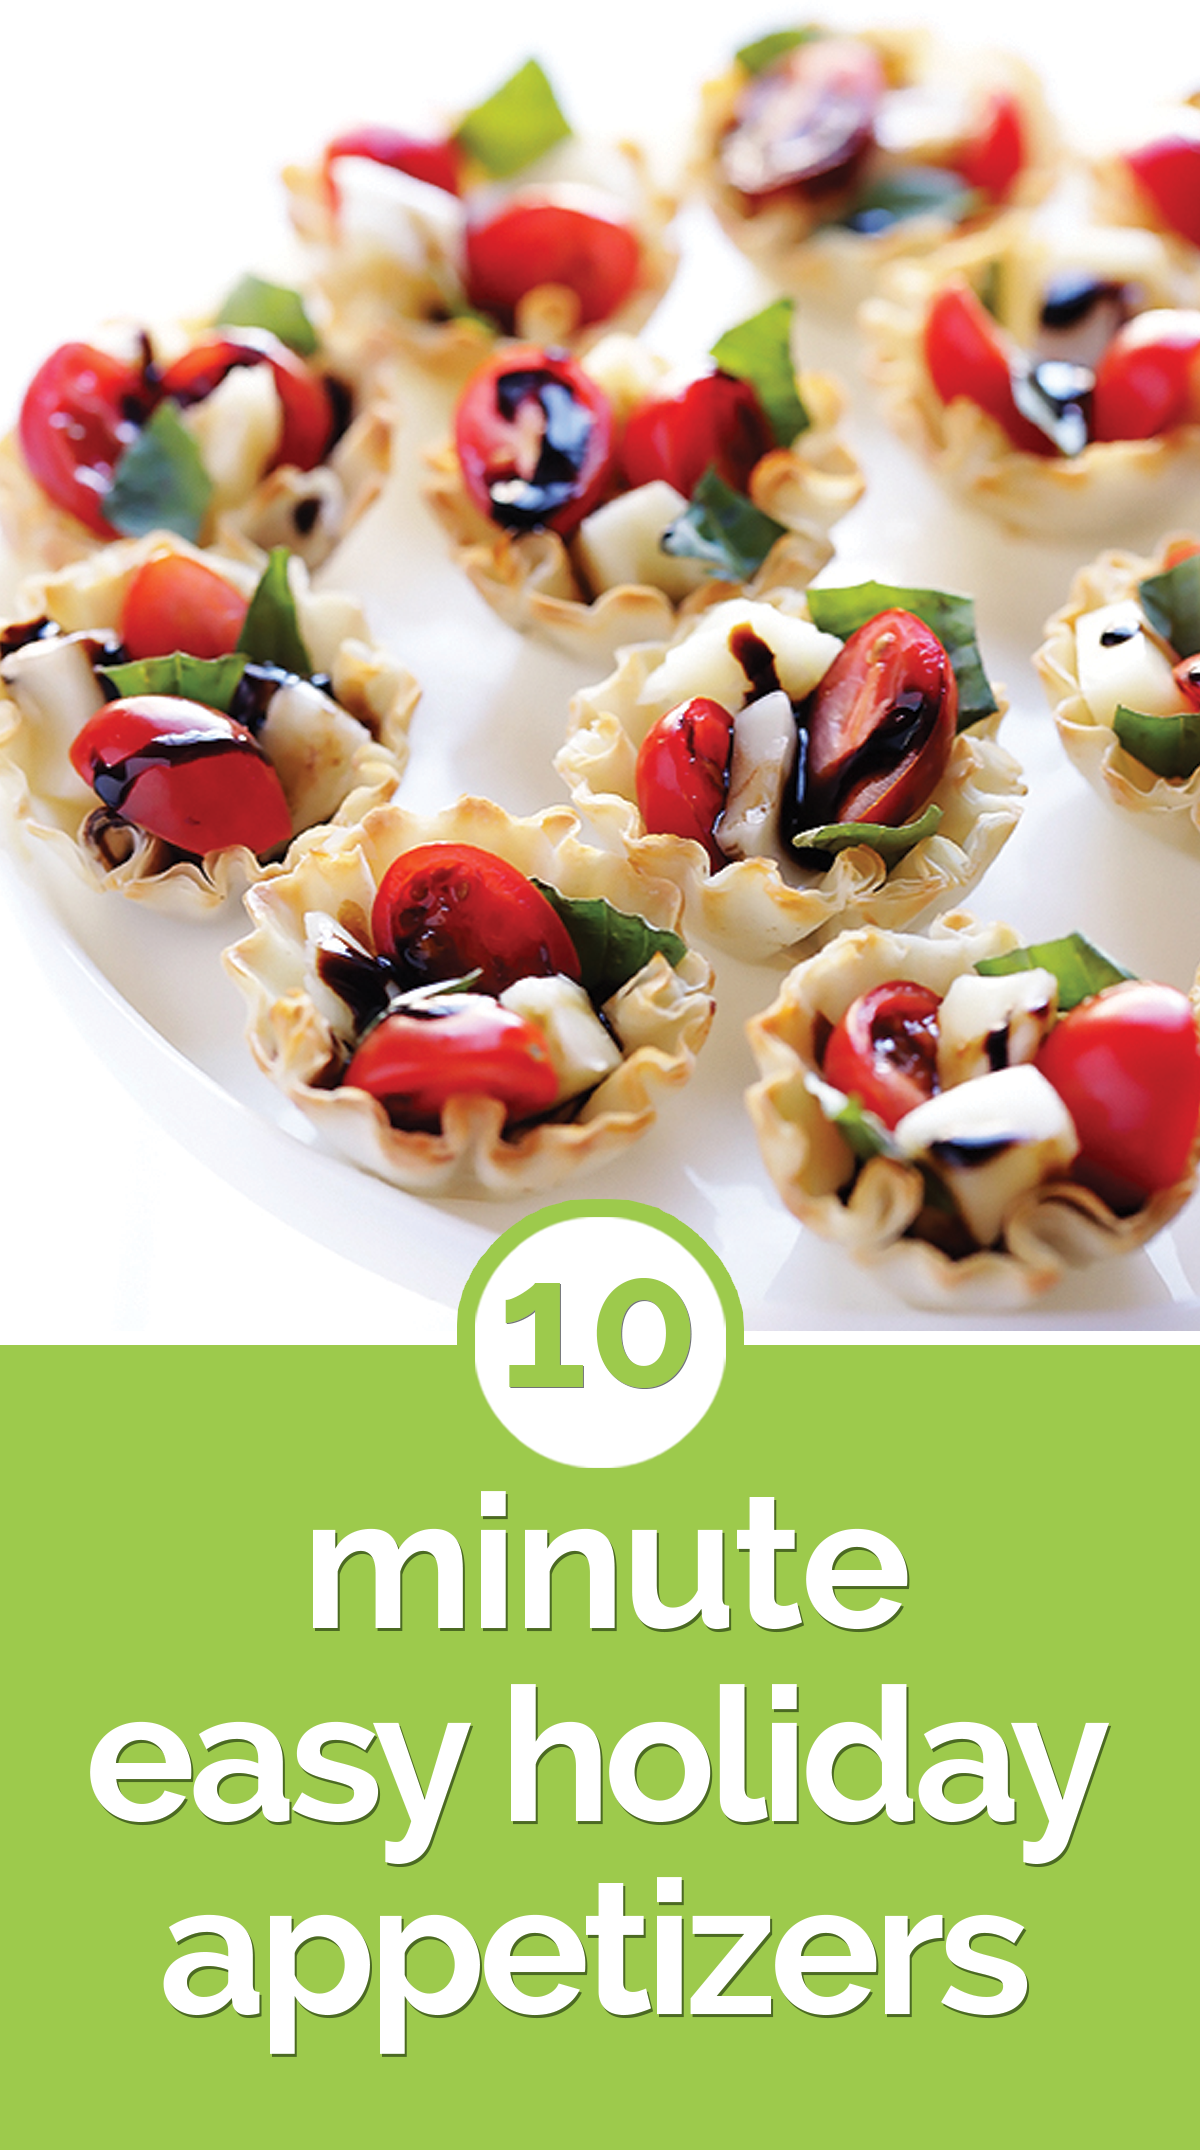 11 Easy Holiday Appetizers You Can Make In 10 Minutes Holiday Appetizers Easy Holiday Recipes